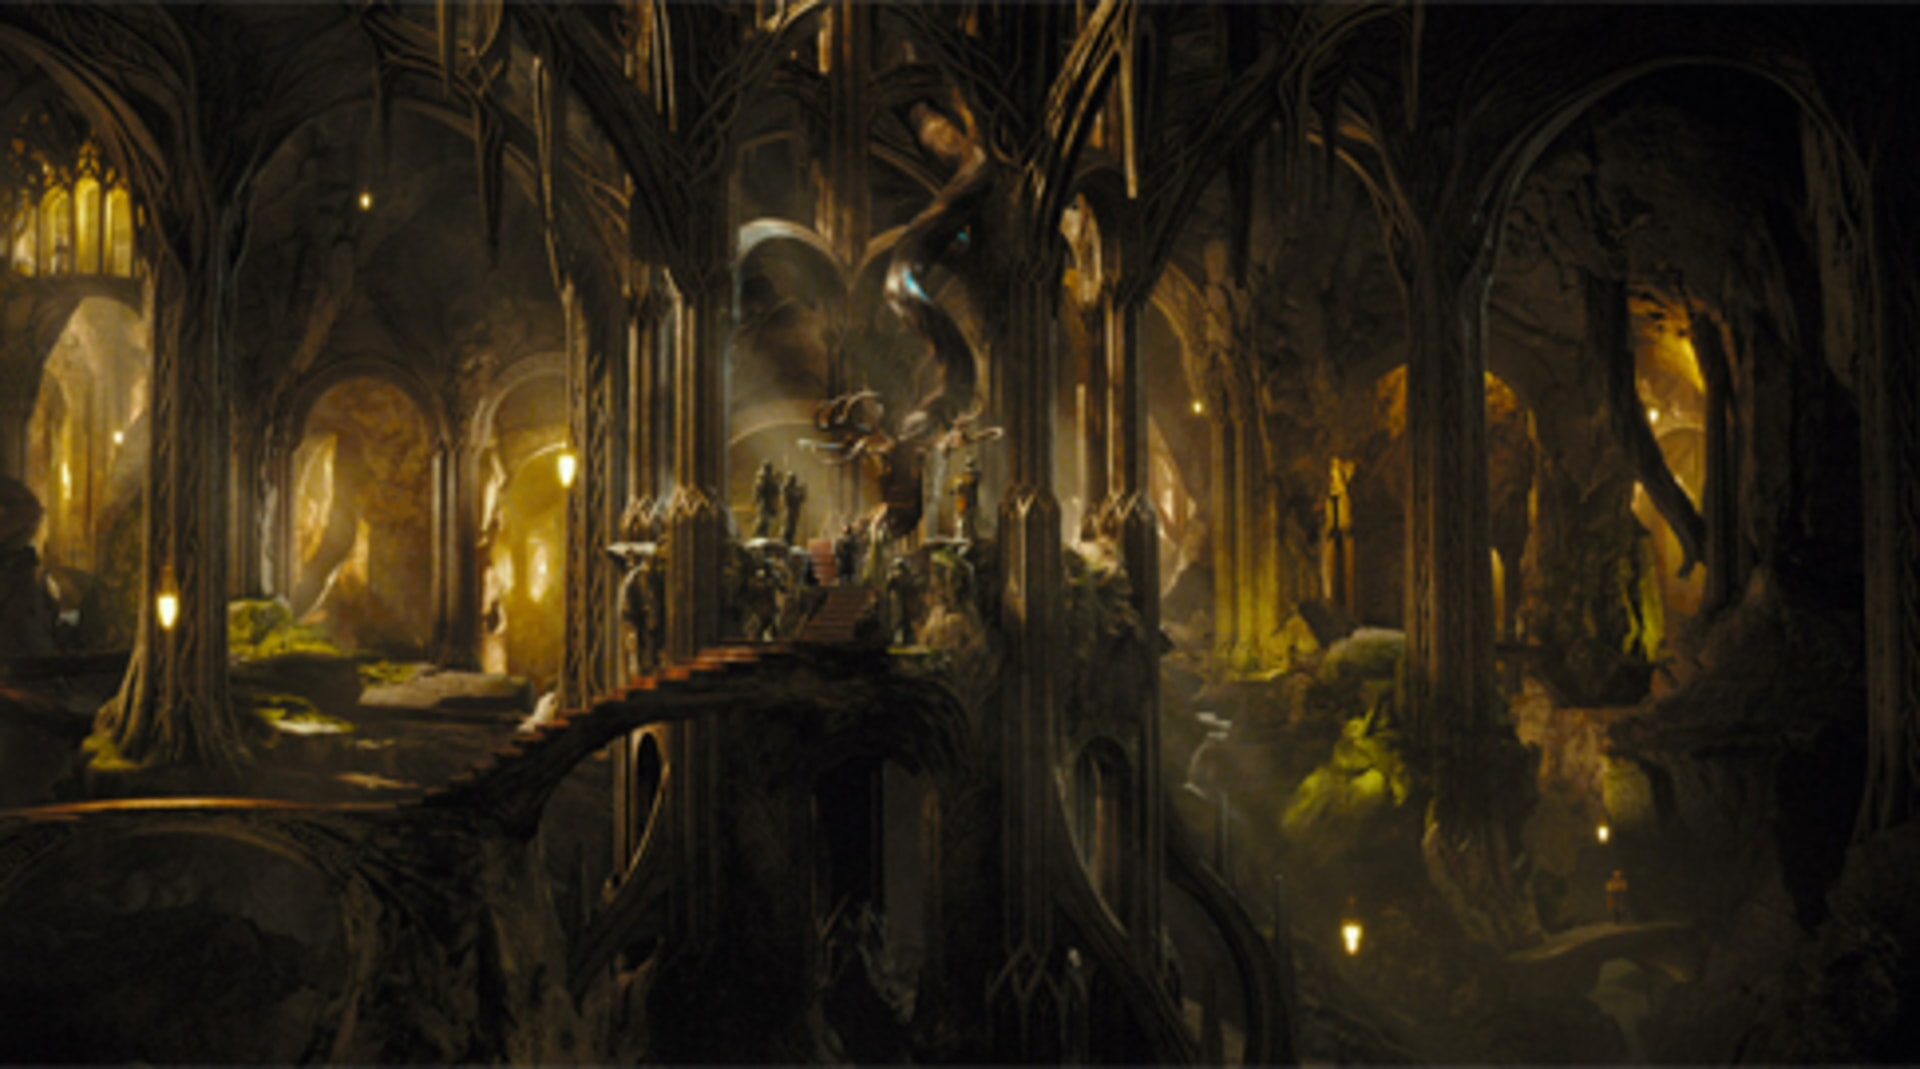 The Hobbit: The Desolation of Smaug - Image 8